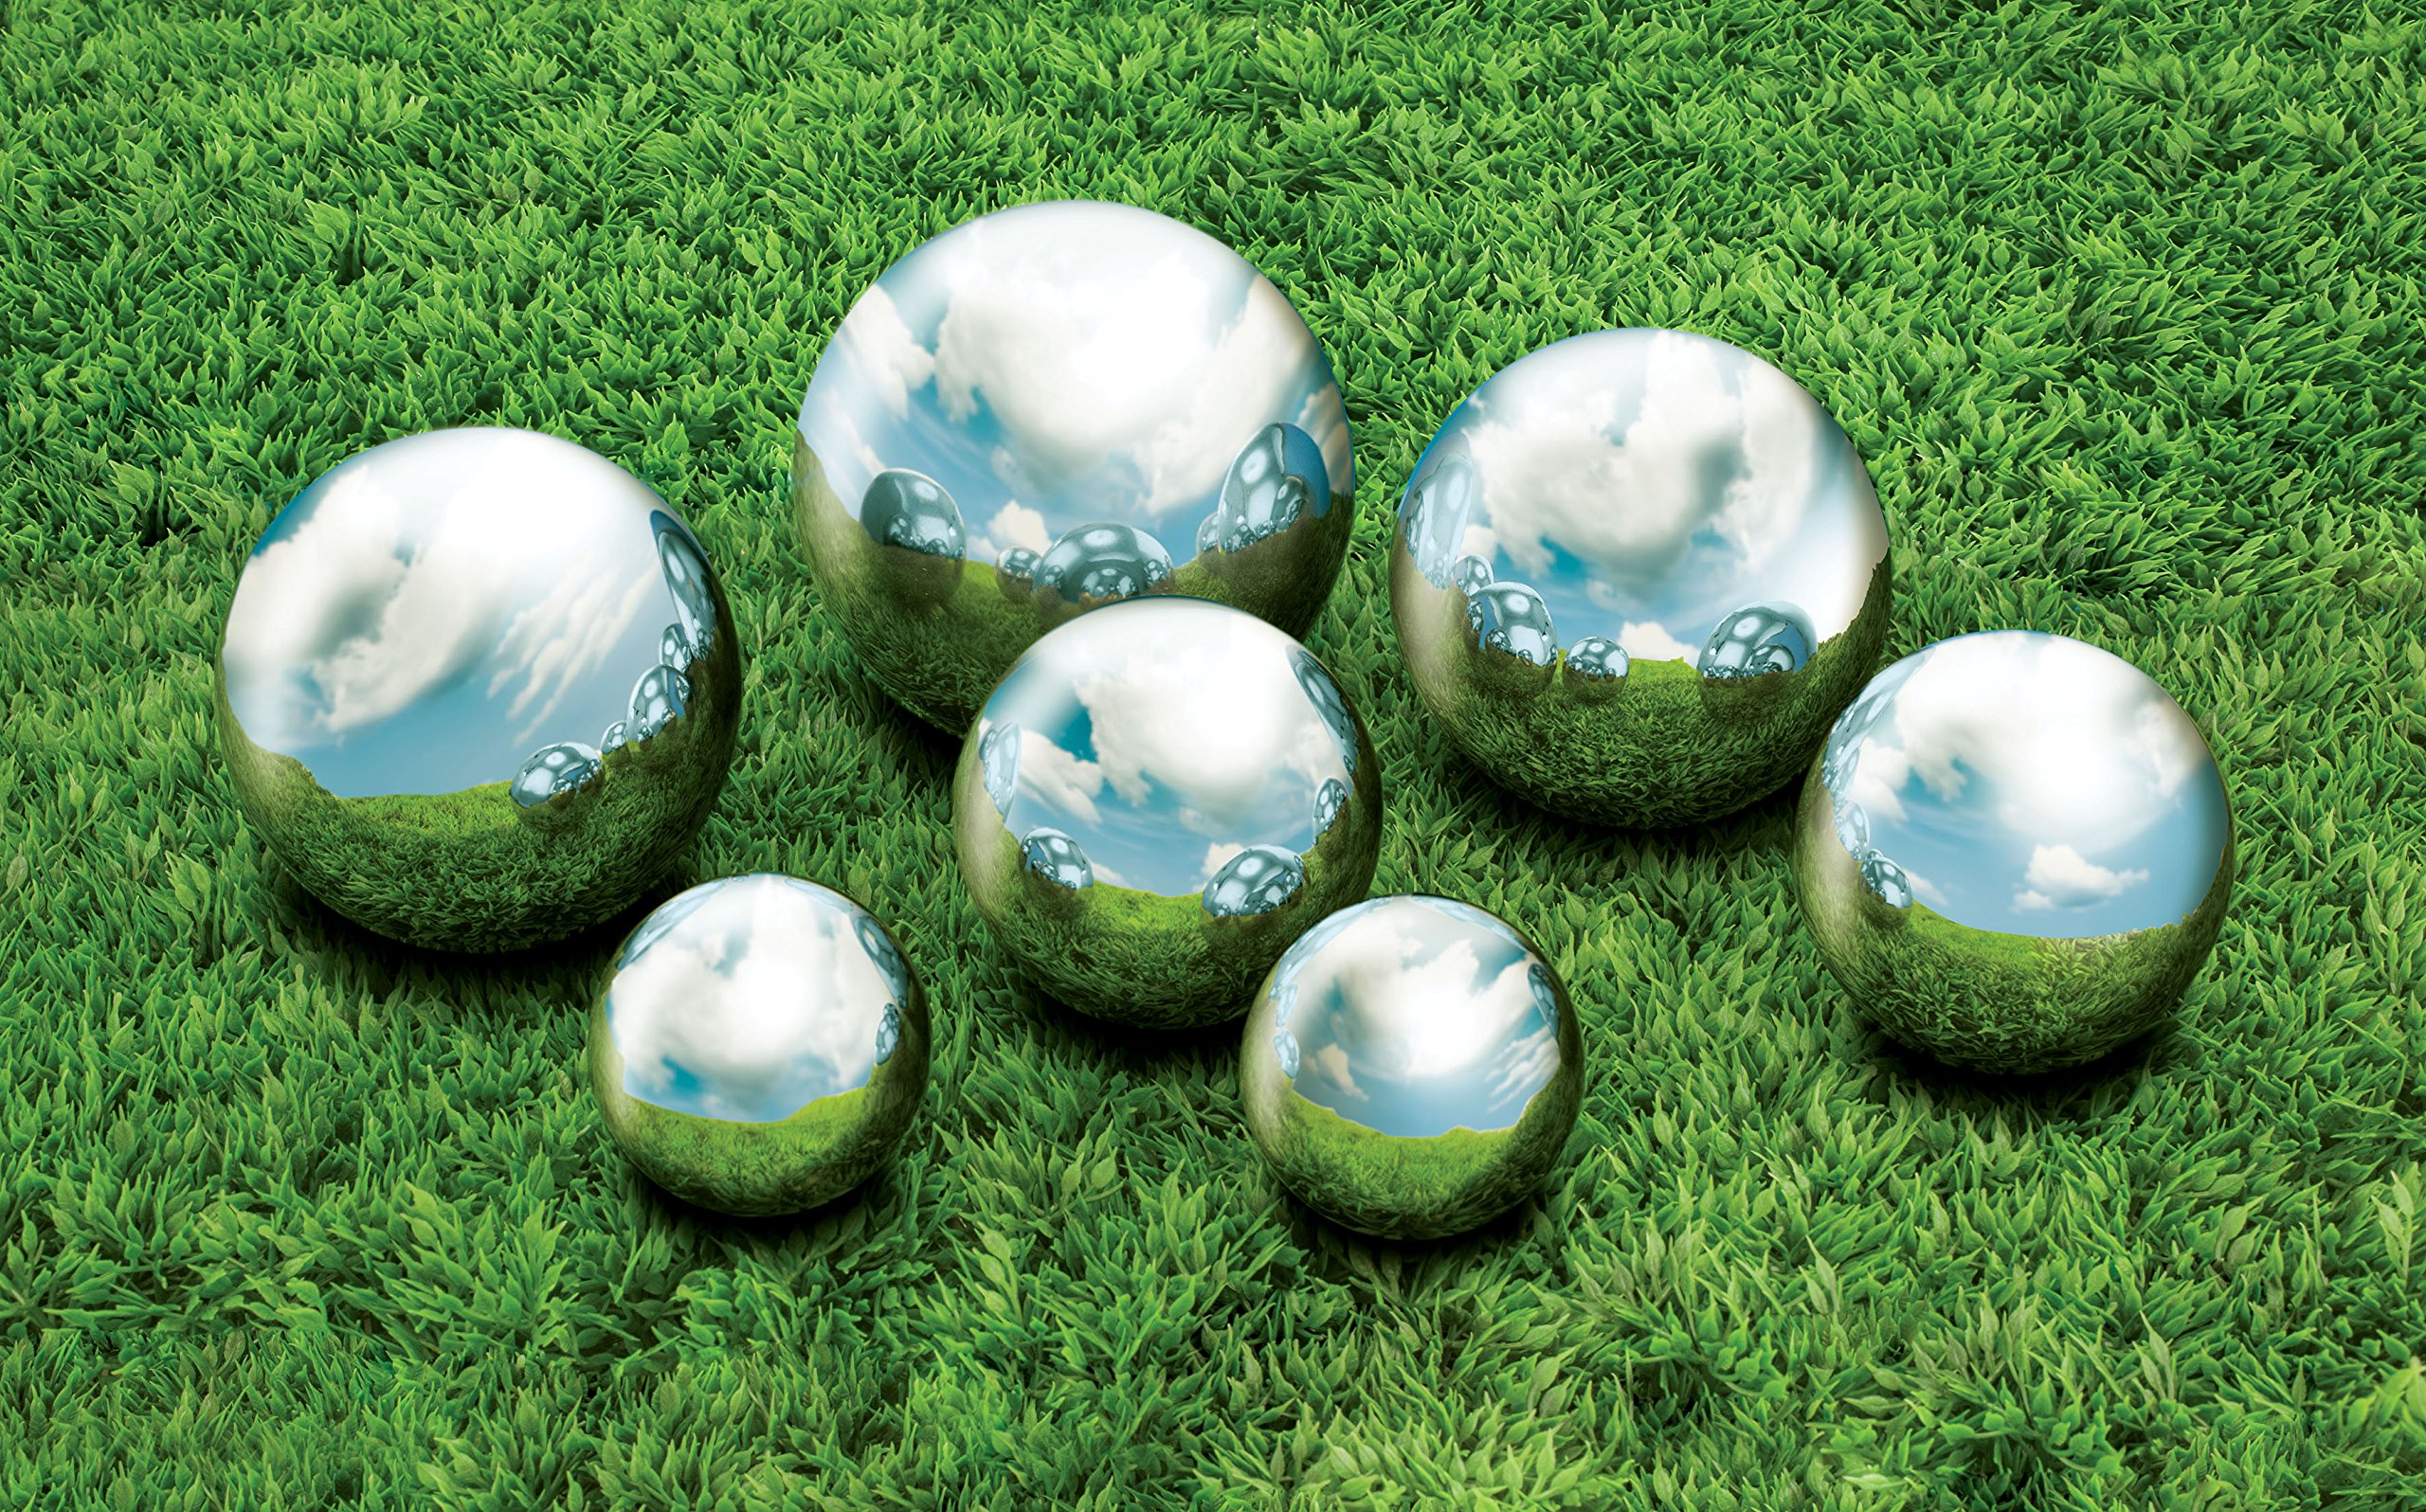 Kovot 7 Piece Garden Sphere Set - 7 Stainless Steel Gazing Balls Ranging From 2 3/8'' - 4 3/4''